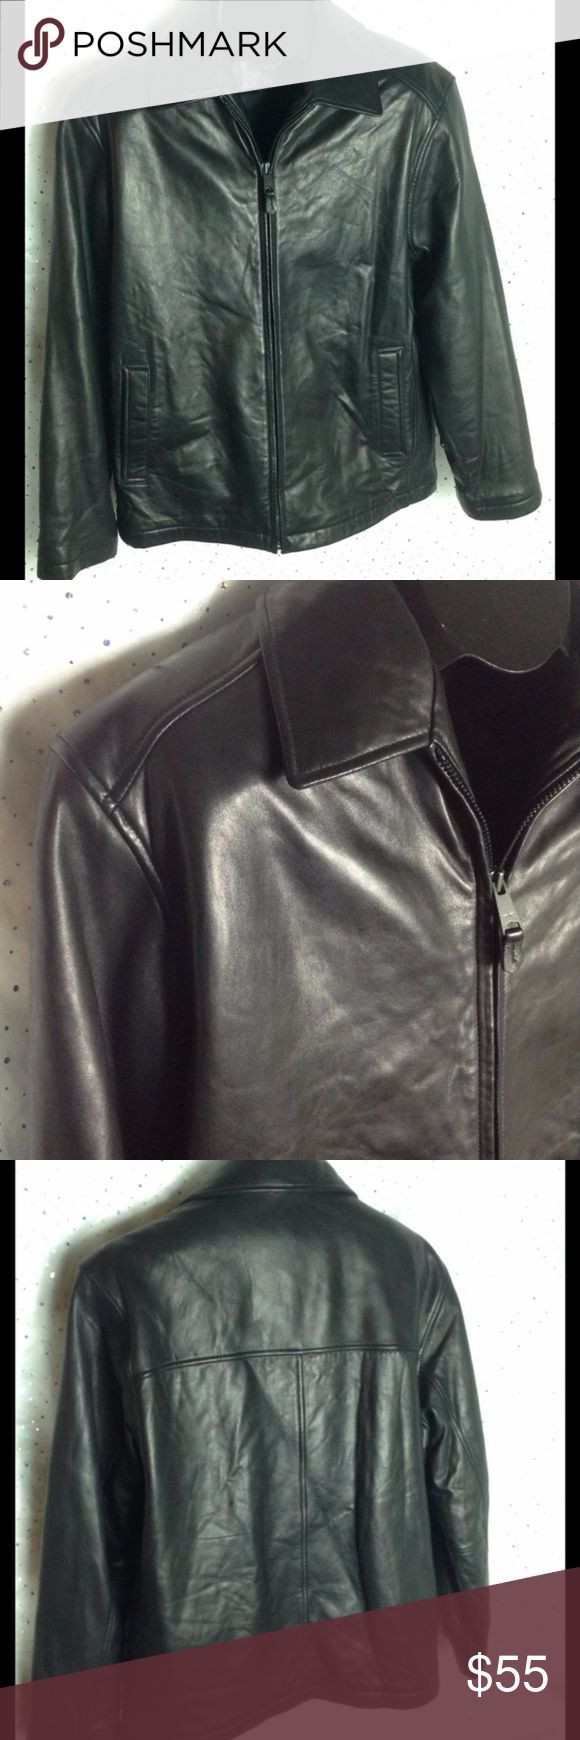 MEN'S Docker's Leather Quilted Jacket Coat (With images